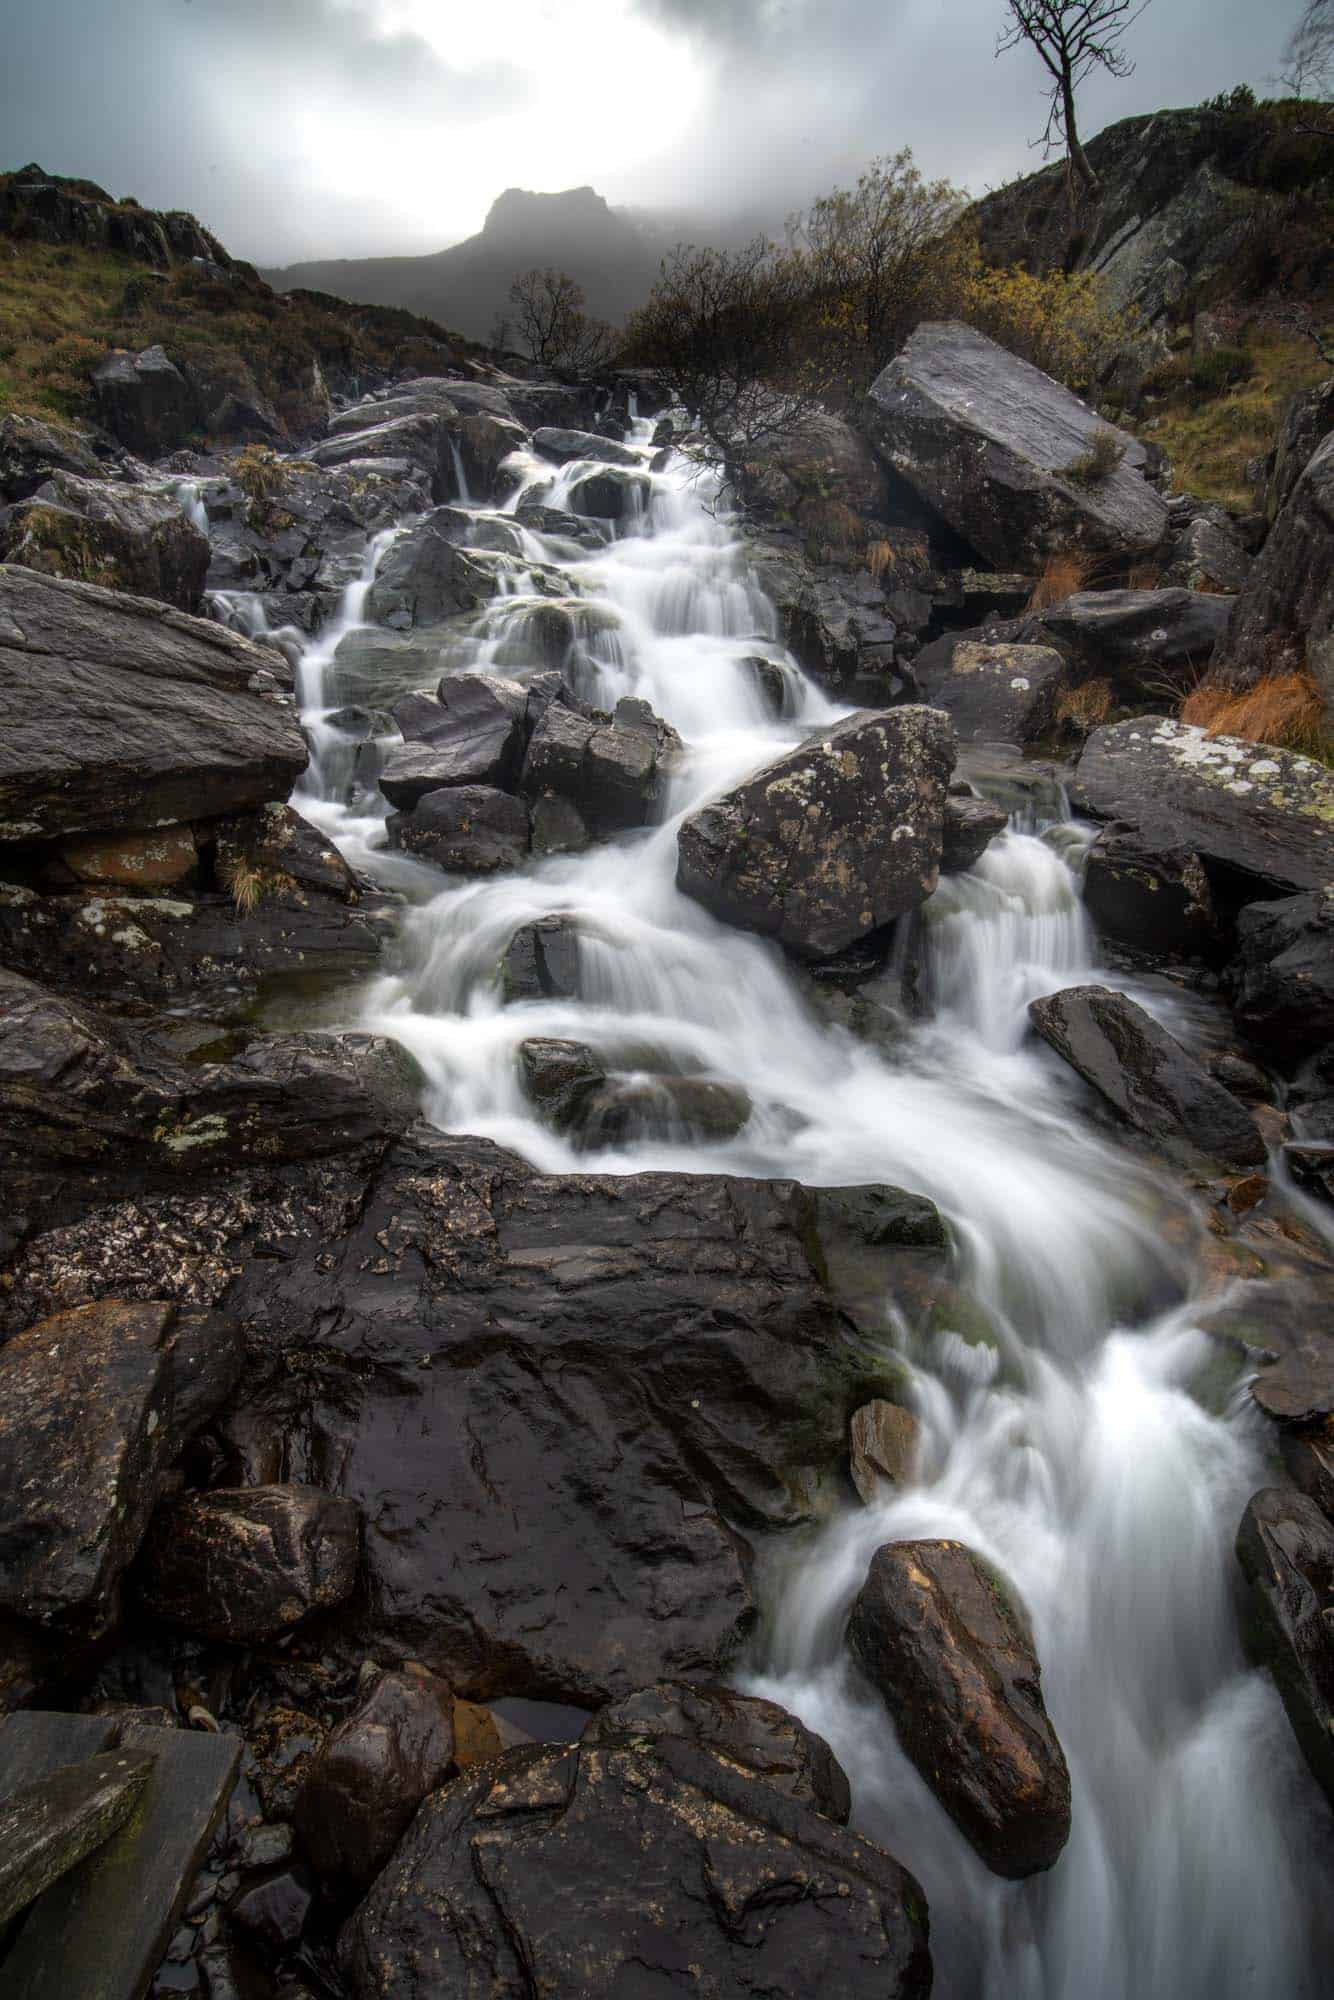 A great opportunity for long exposure photography in Snowdonia is the waterfall near Llyn Idwal..